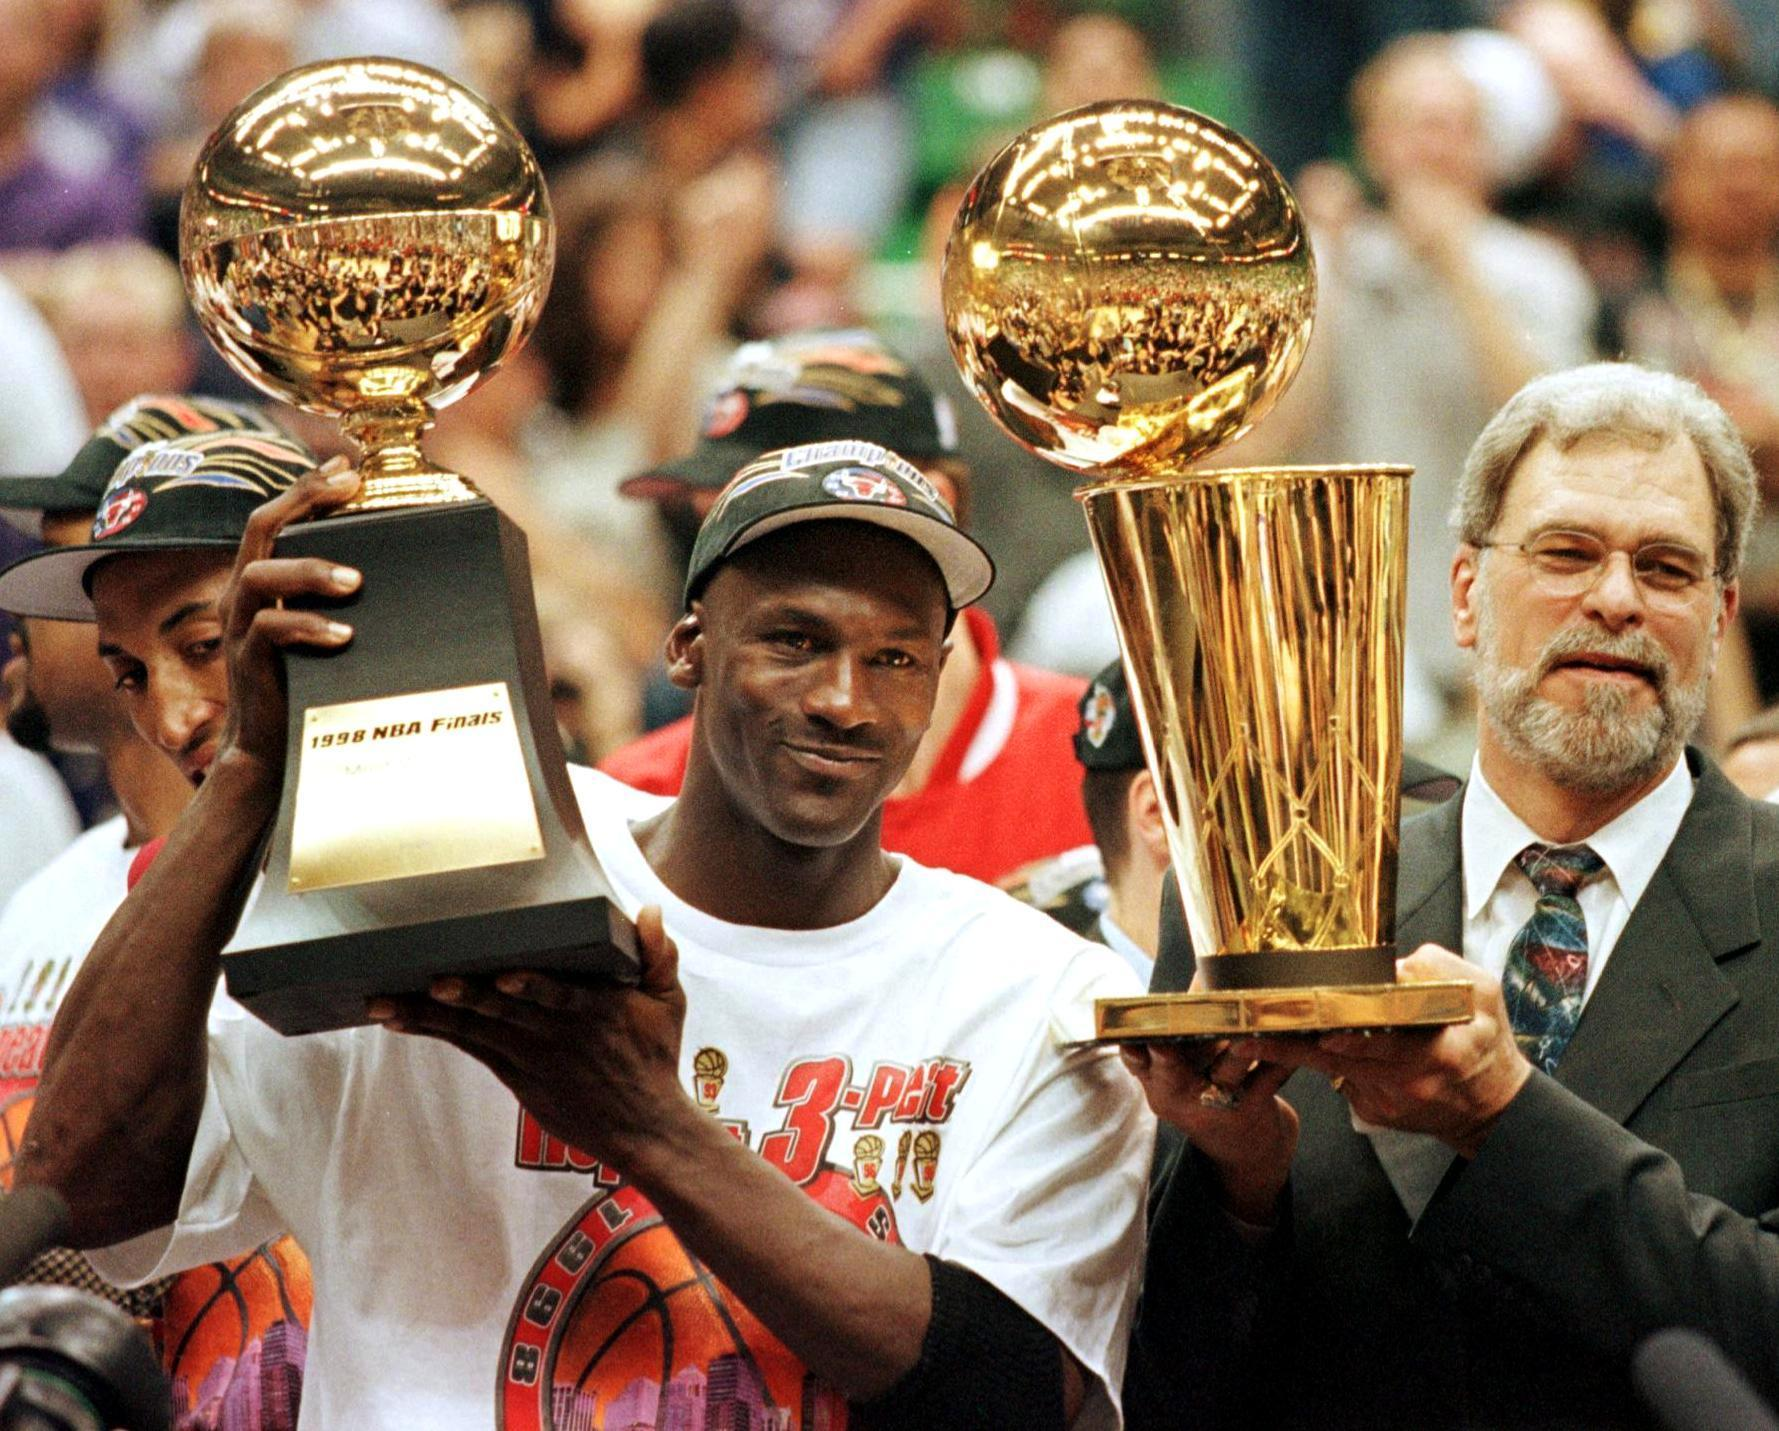 Michael Jordan 'Last Dance' documentary on 1998 Bulls championship moved up to April release